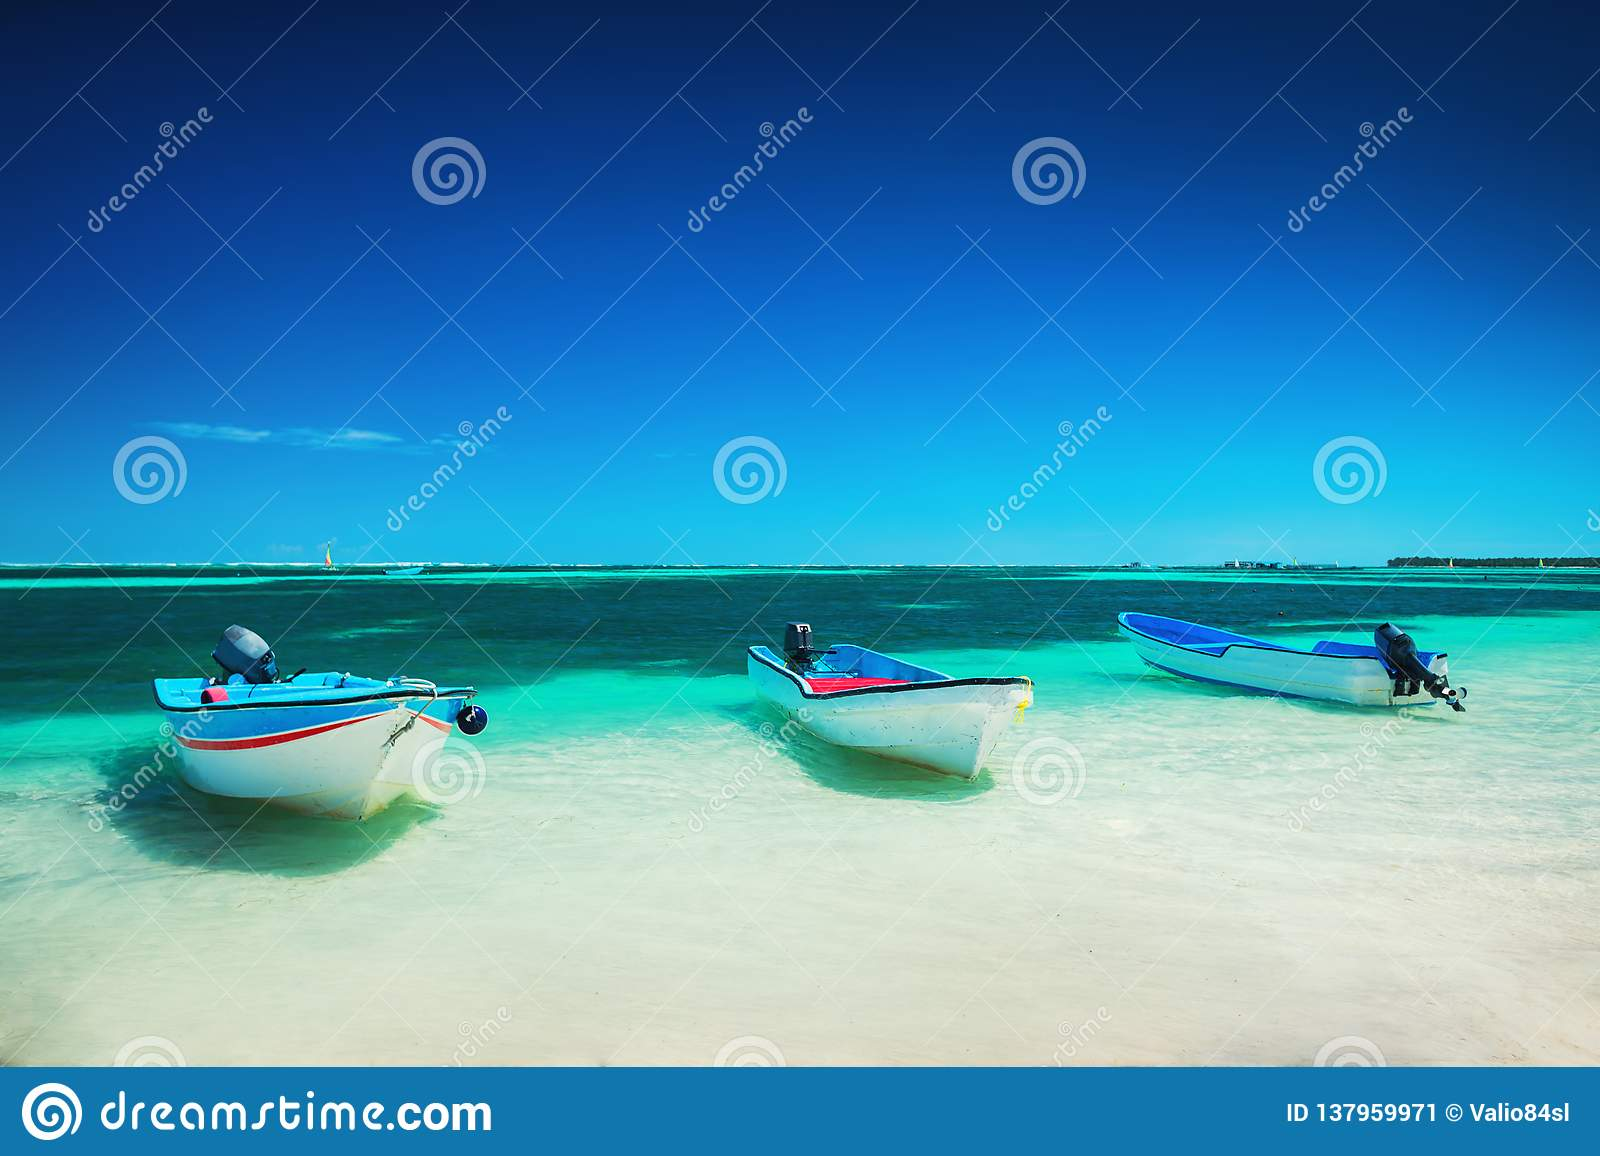 Caribbean sea and speed boats on the shore of Punta Cana, beautiful panoramic view